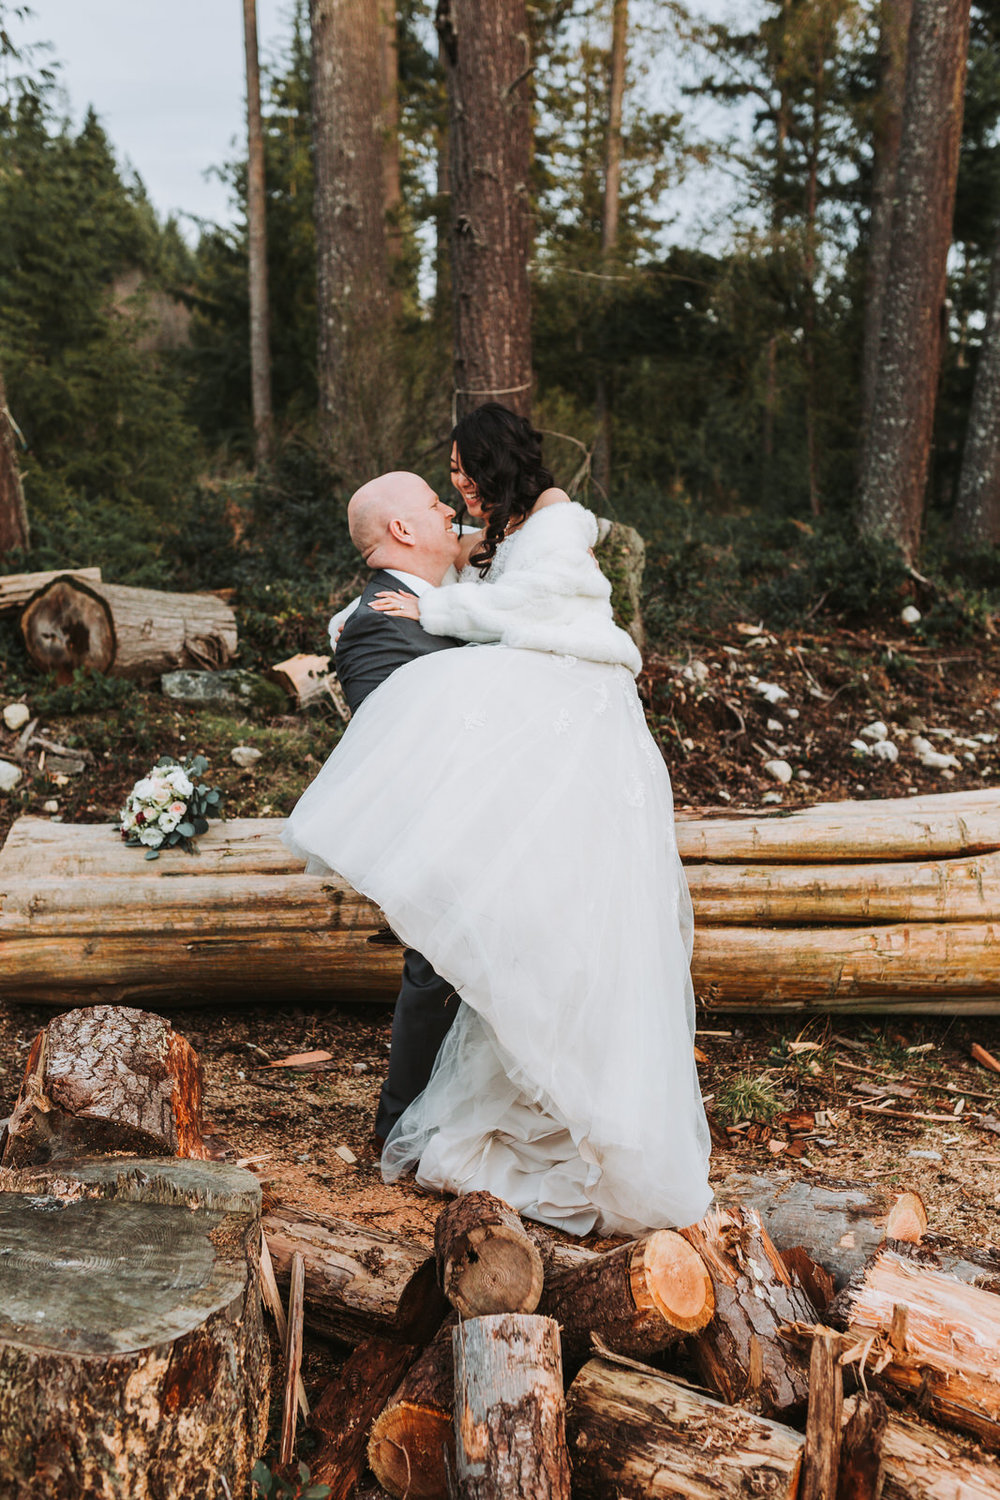 VANCOUVER WEDDING PHOTOGRAPHER - JENNIFER PICARD - ROBERTS CREEK WEDDING